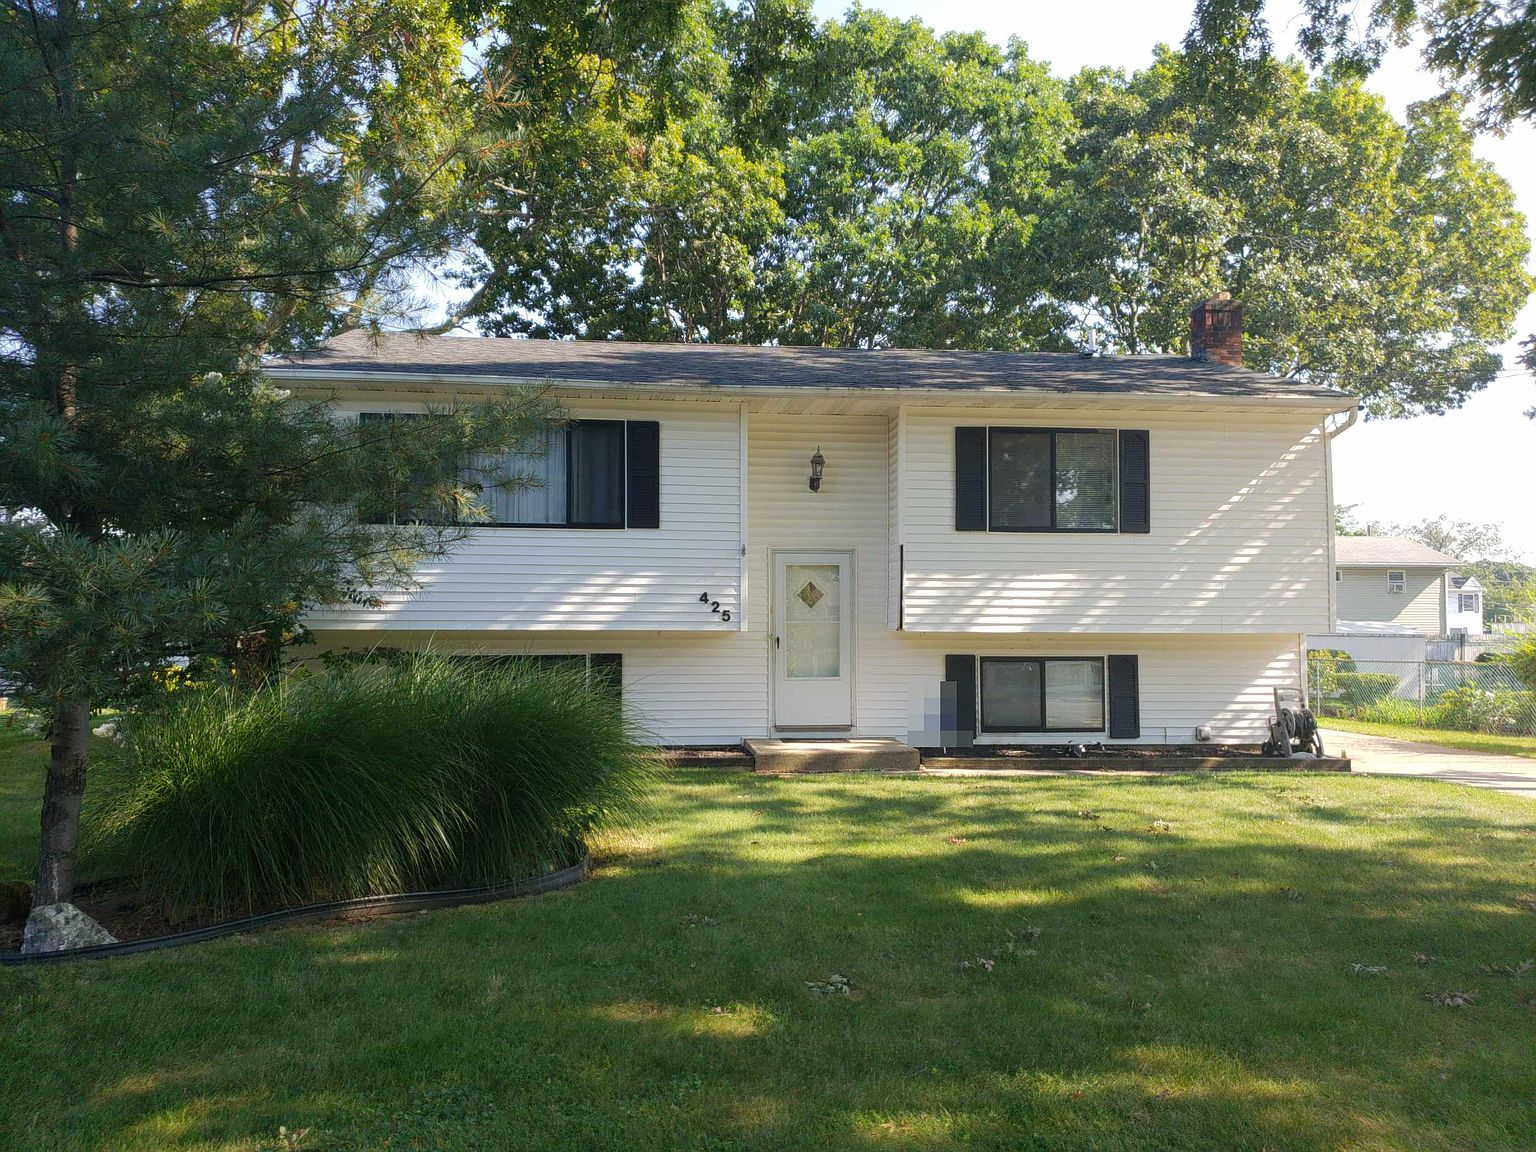 425 41st St Copiague Ny 11726 Zillow